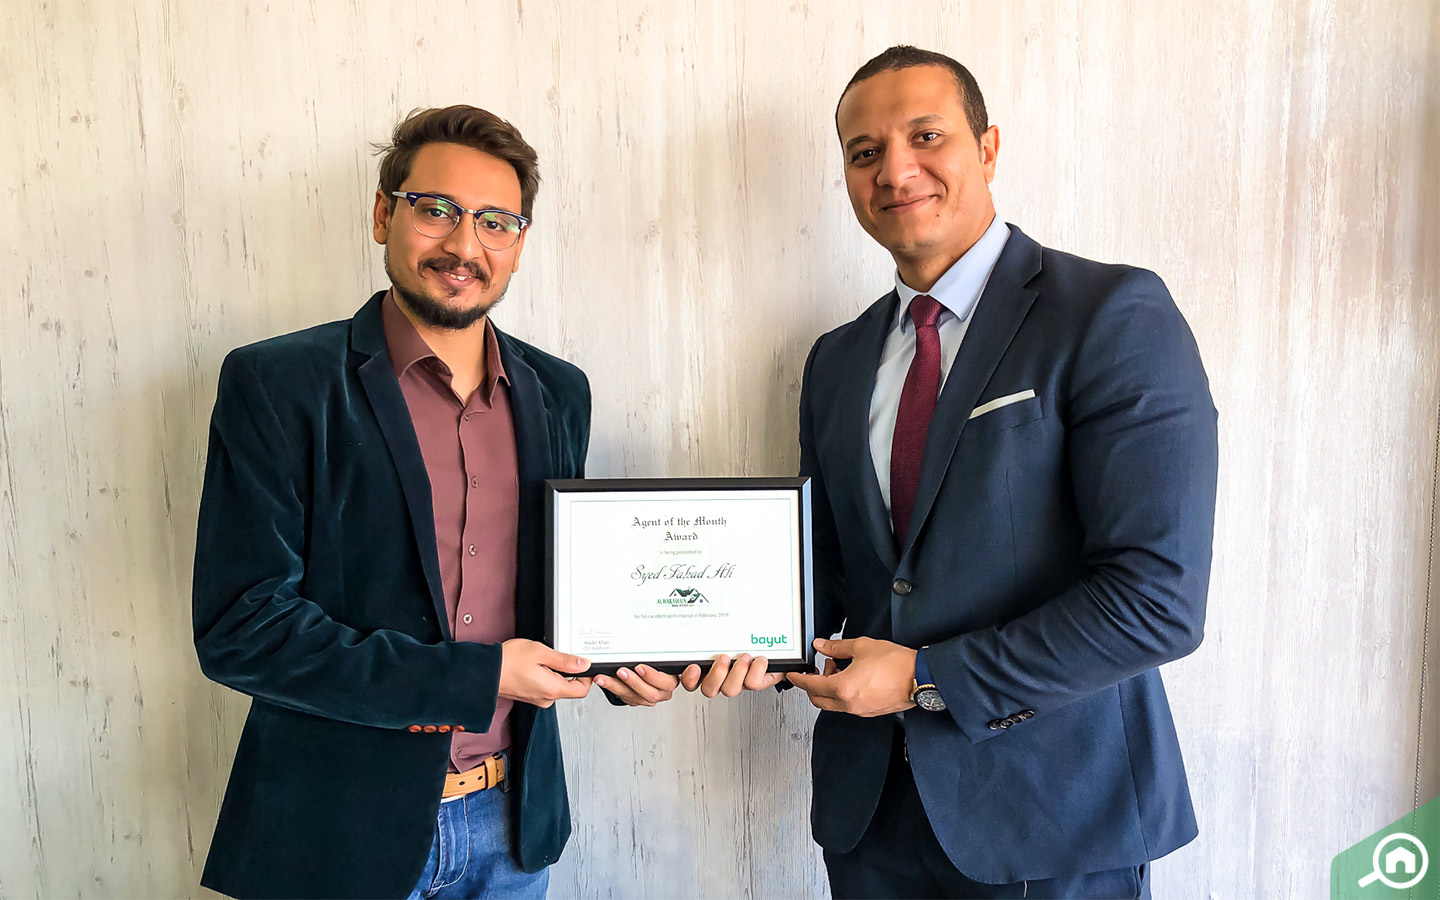 Real estate agent Syed Fahad Ali accepts award